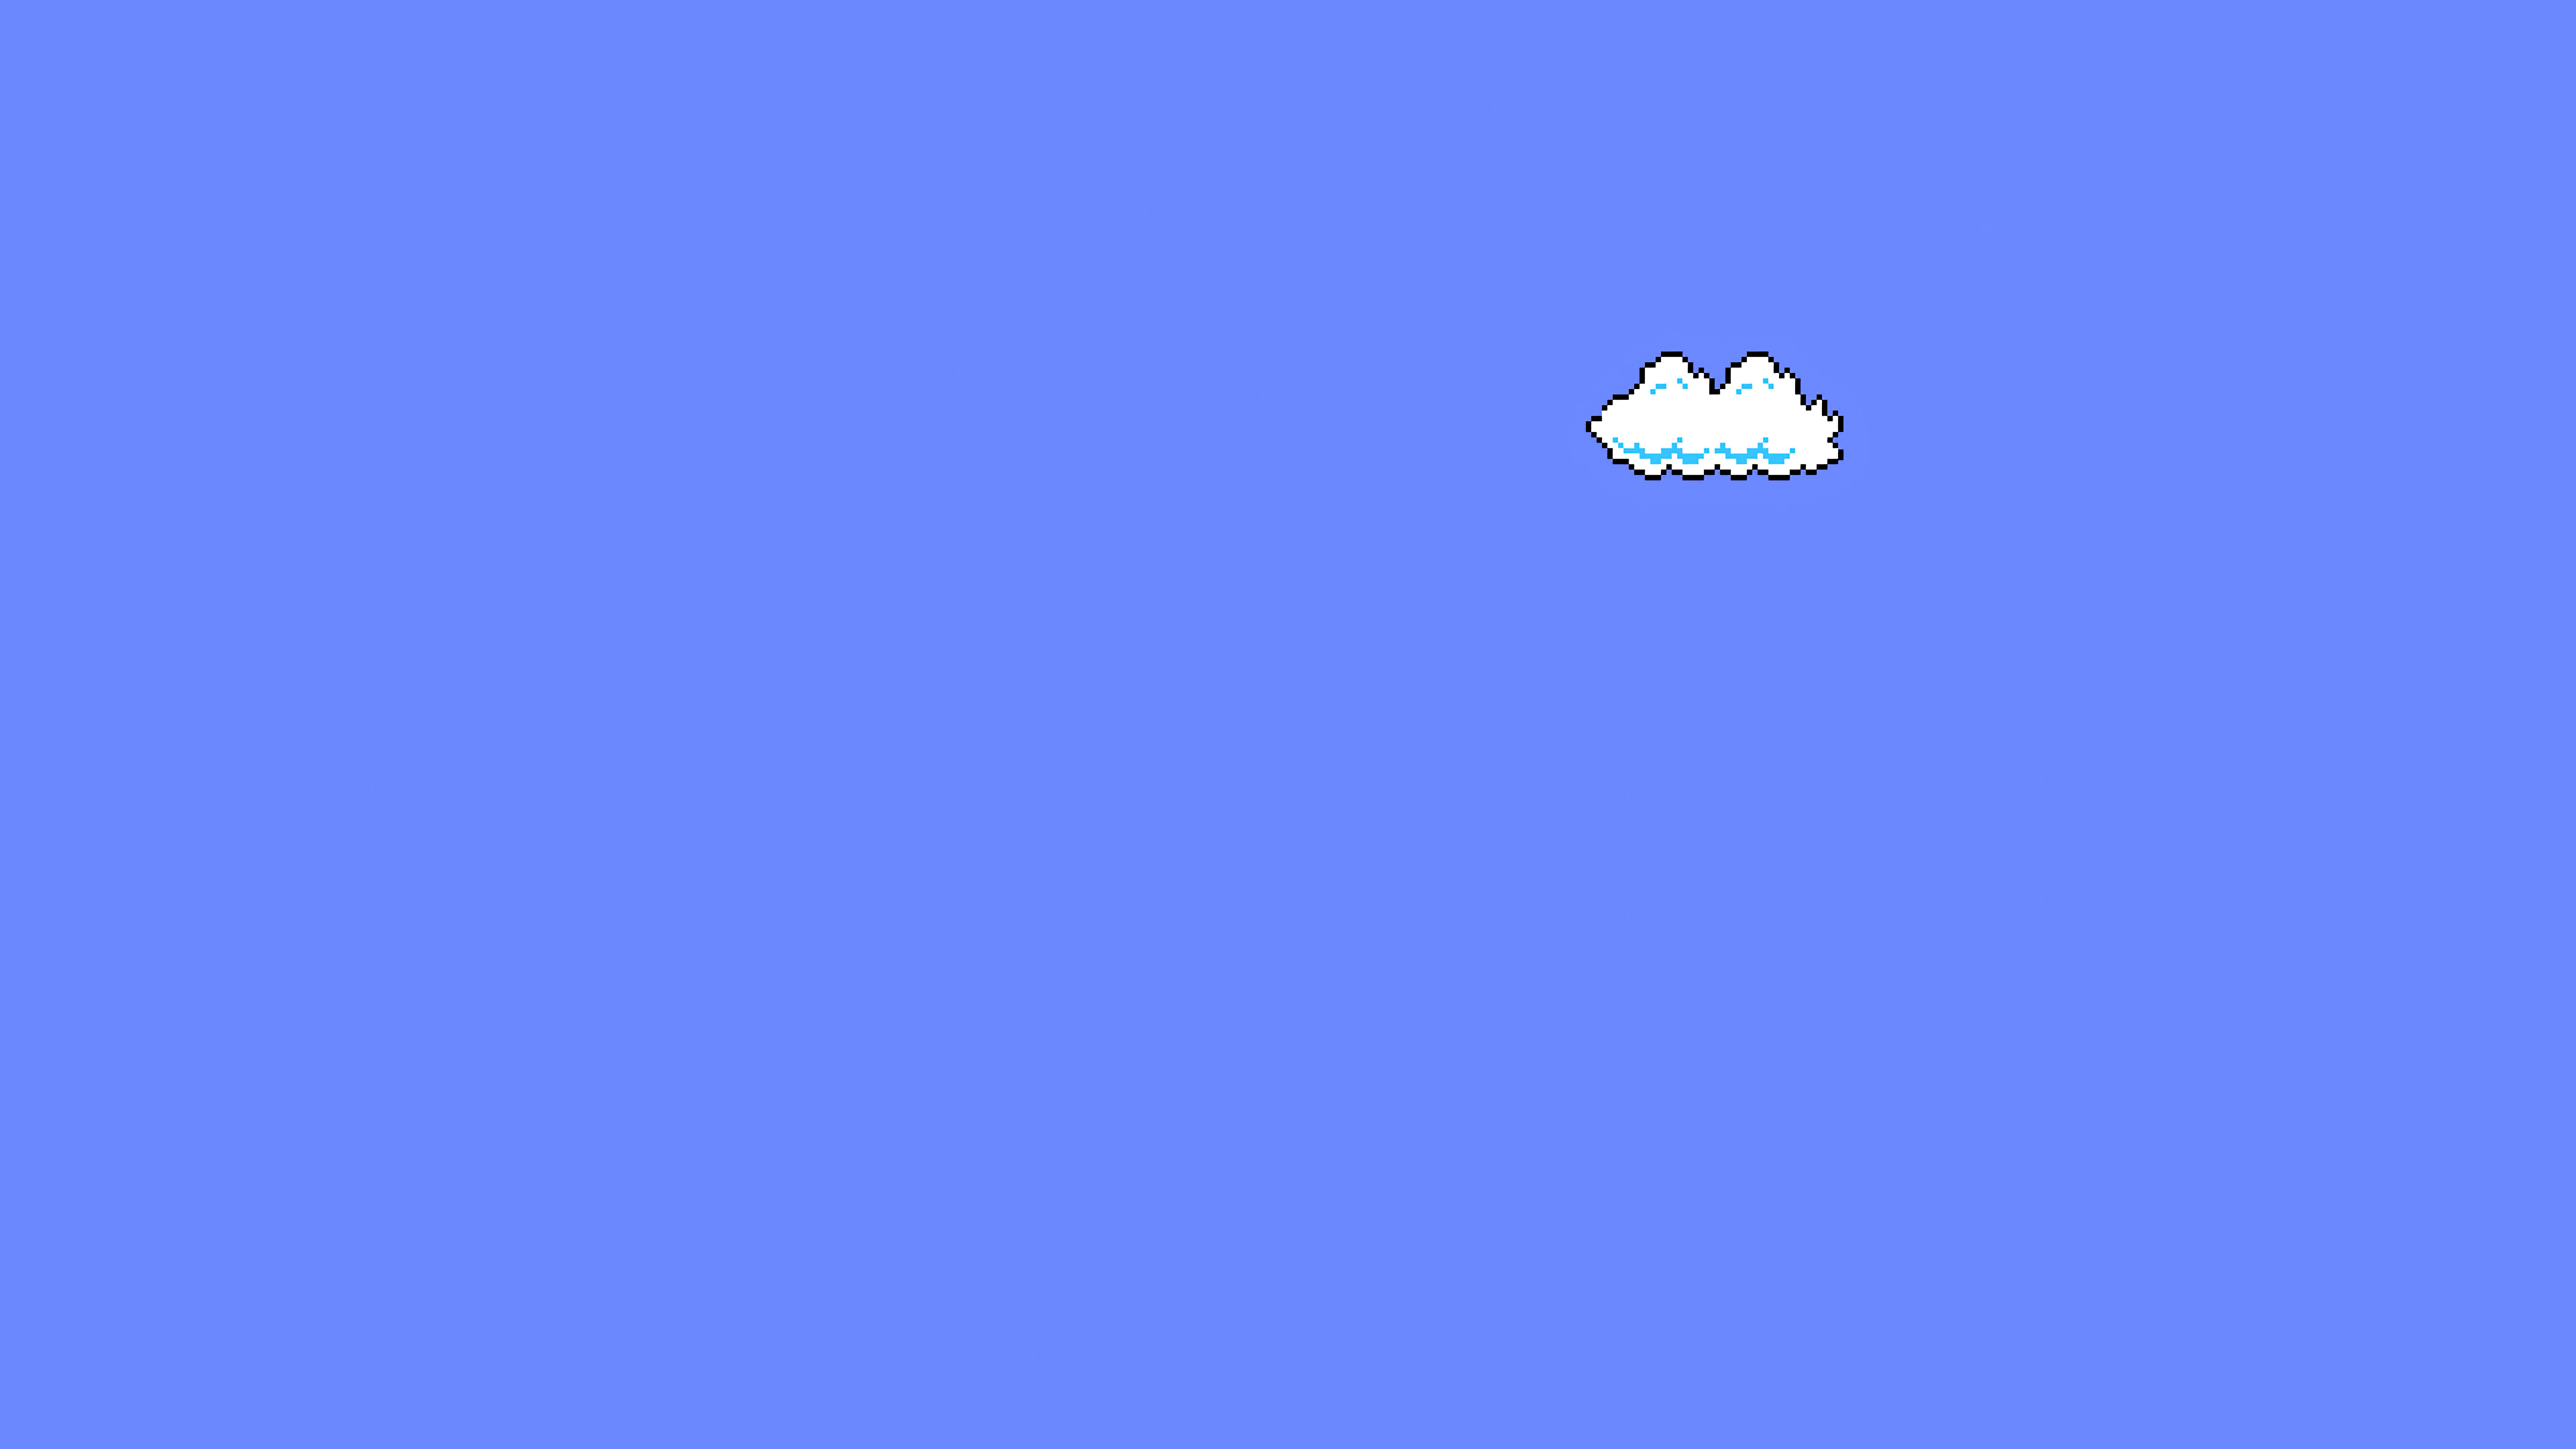 Super Mario Clouds Minimal Art 4k Hd Games 4k Wallpapers Images